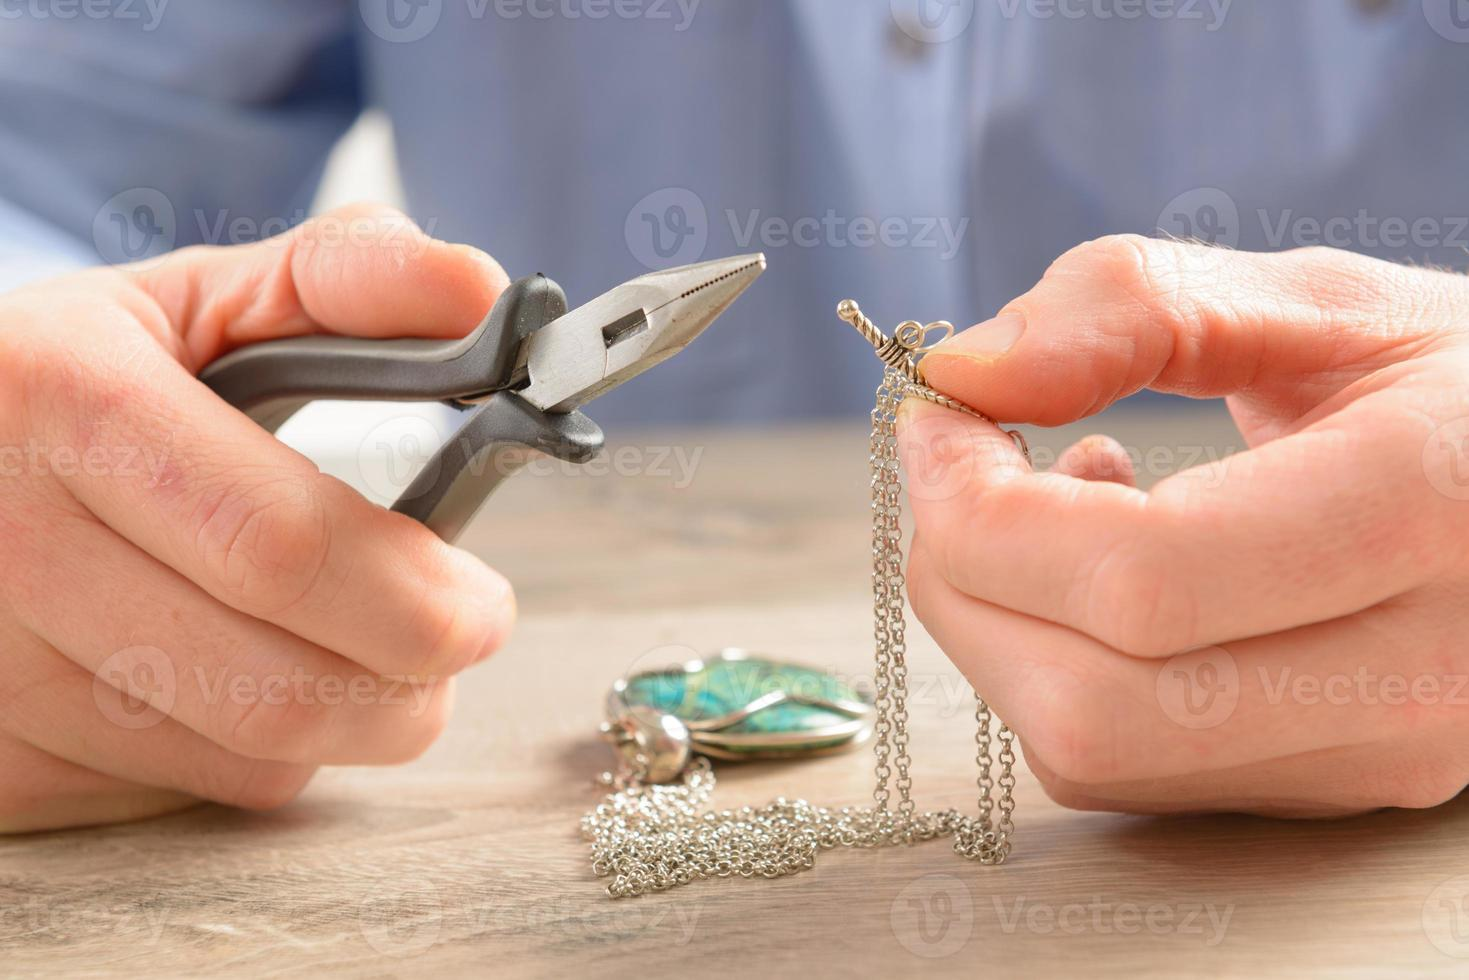 Creating or fixing jewelry photo